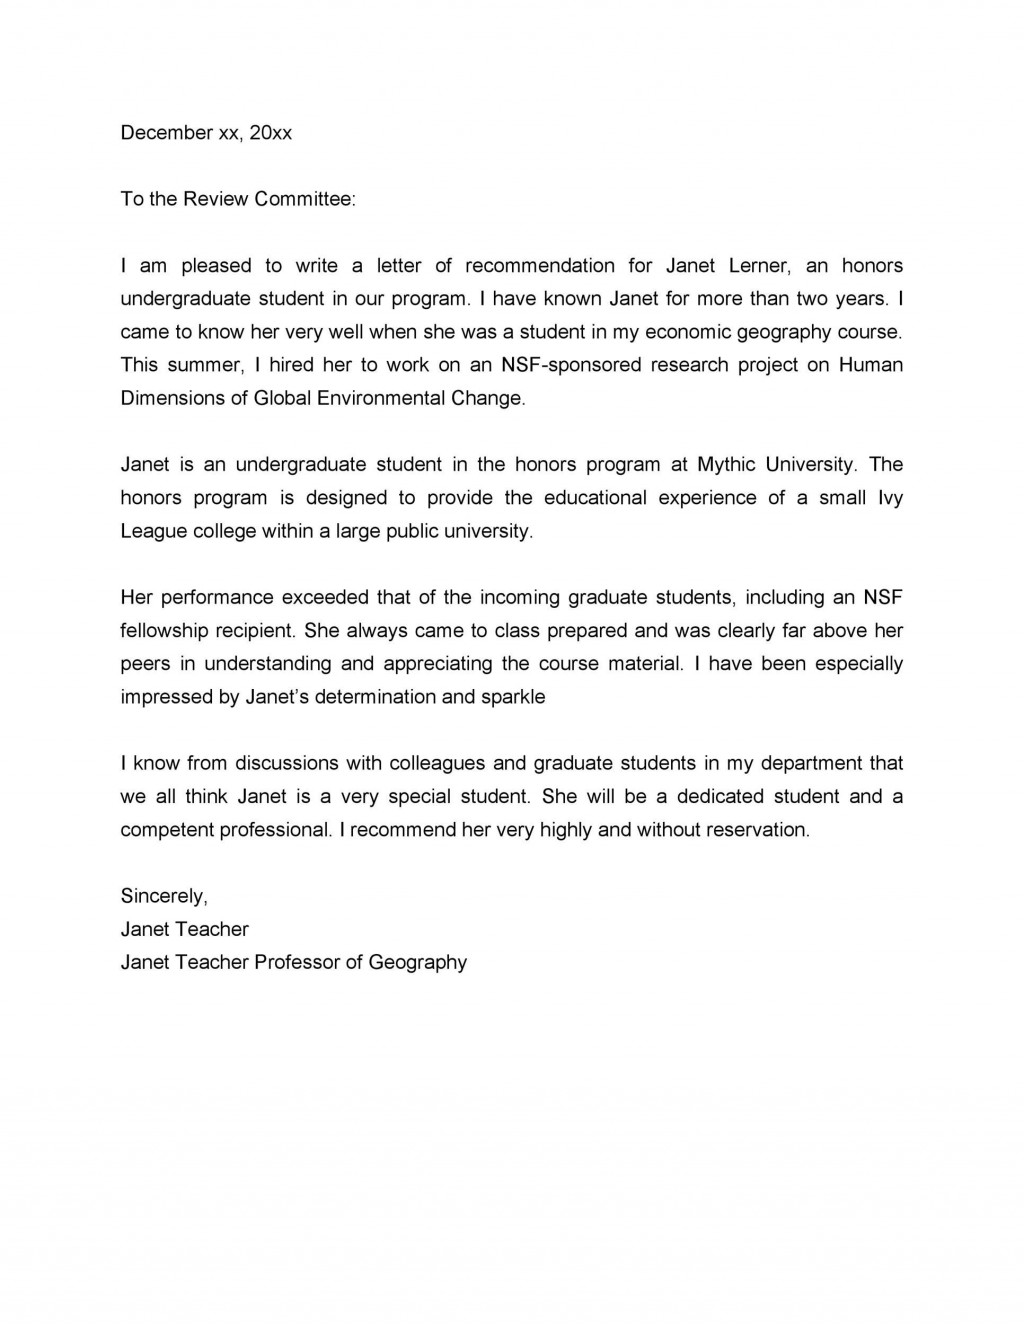 008 Stirring Letter Of Recommendation Template For College Student Image  Sample From ProfessorLarge